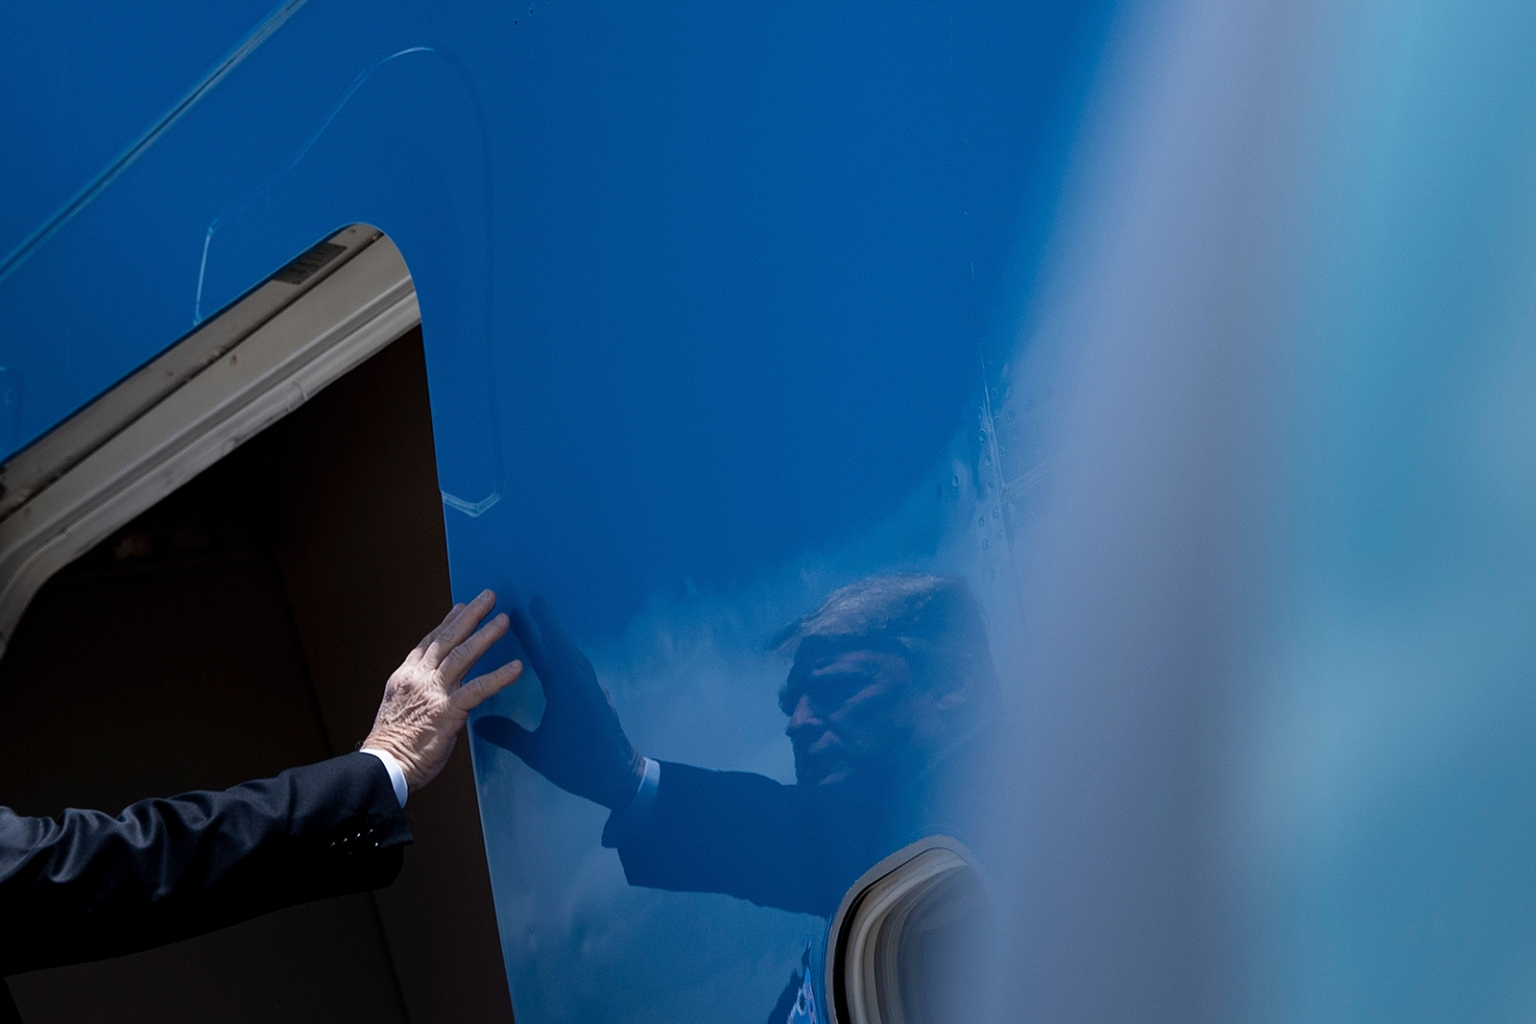 U.S. President Donald Trump boards Air Force One at Andrews Air Force Base in Maryland on May 14. BRENDAN SMIALOWSKI/AFP/Getty Images